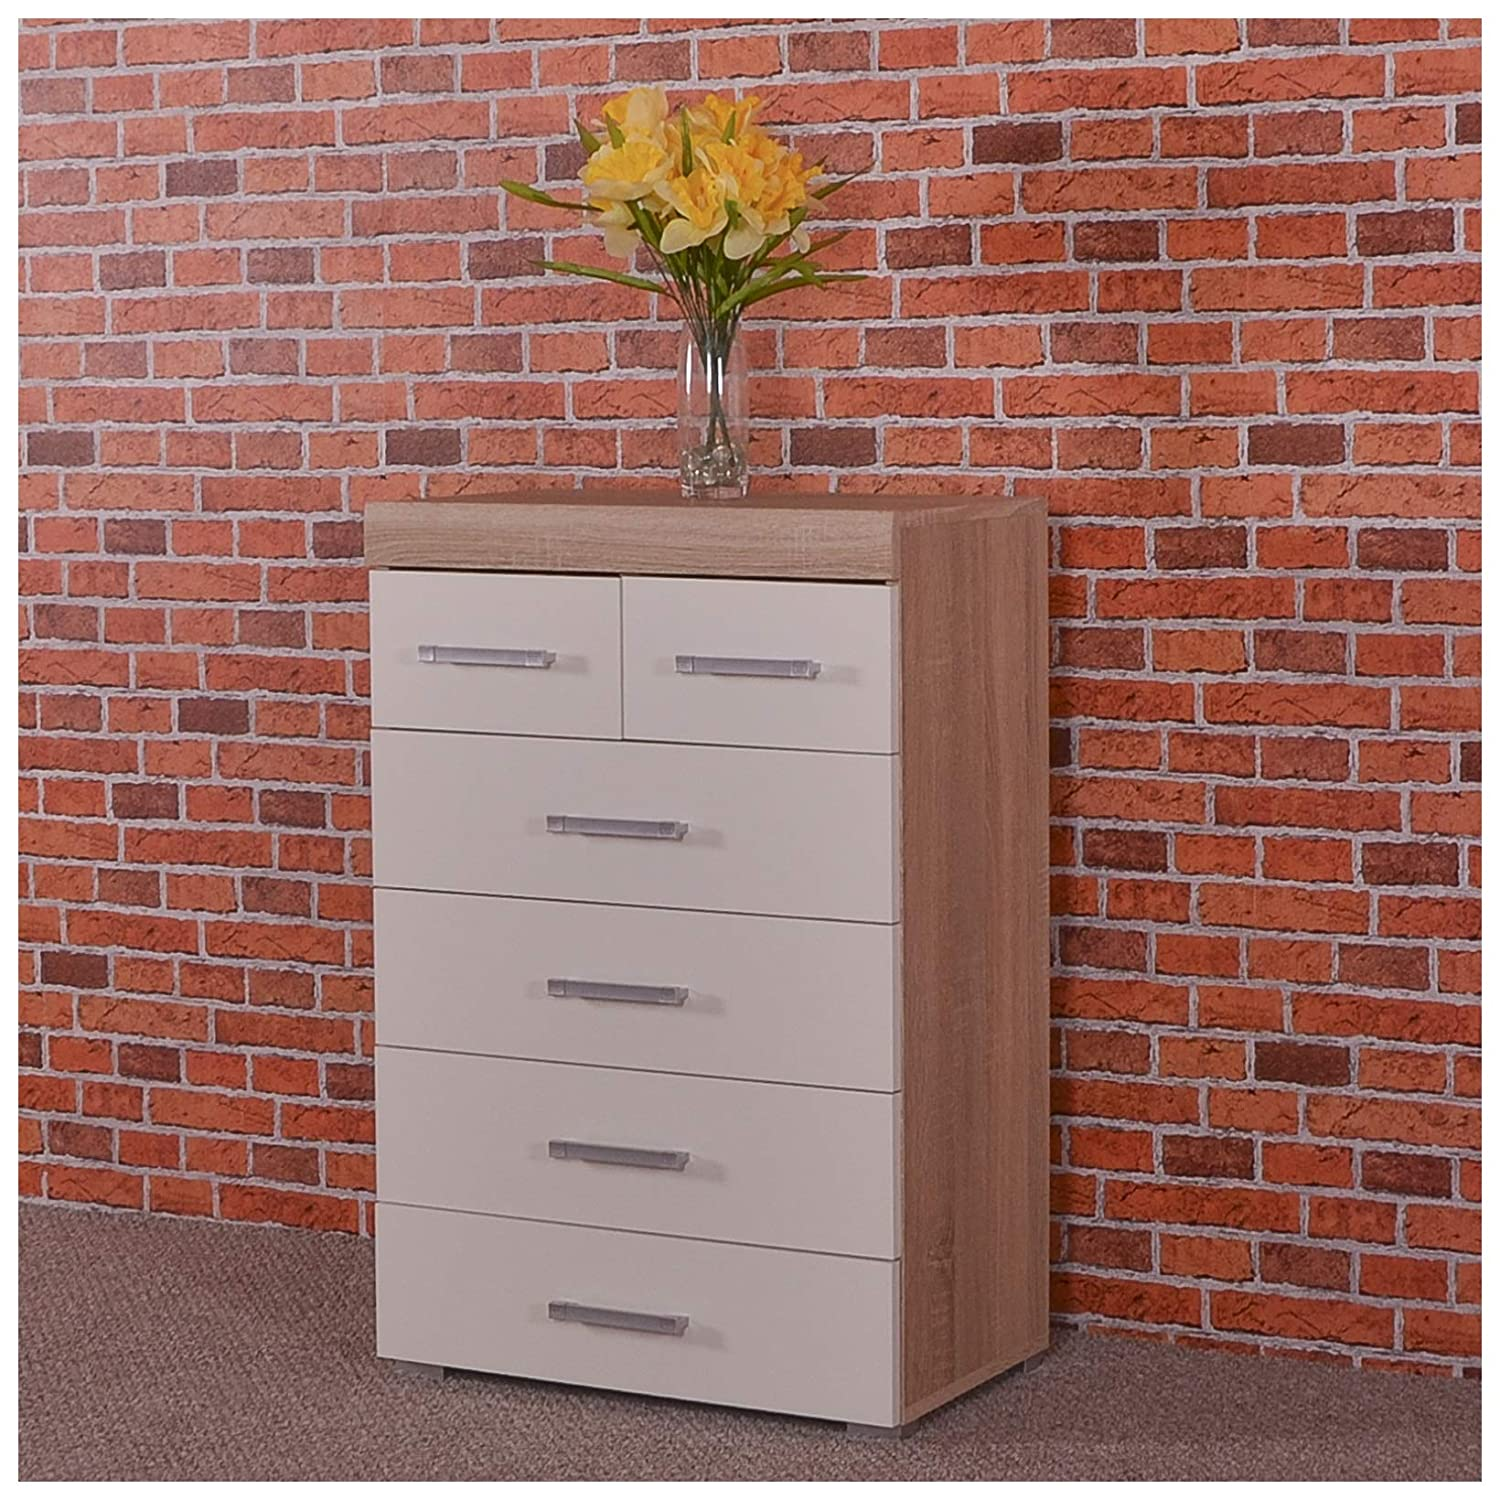 DRP Trading Chest 4+2 Drawers in White & Sonoma Oak Bedroom Furniture Modern 6 Draw